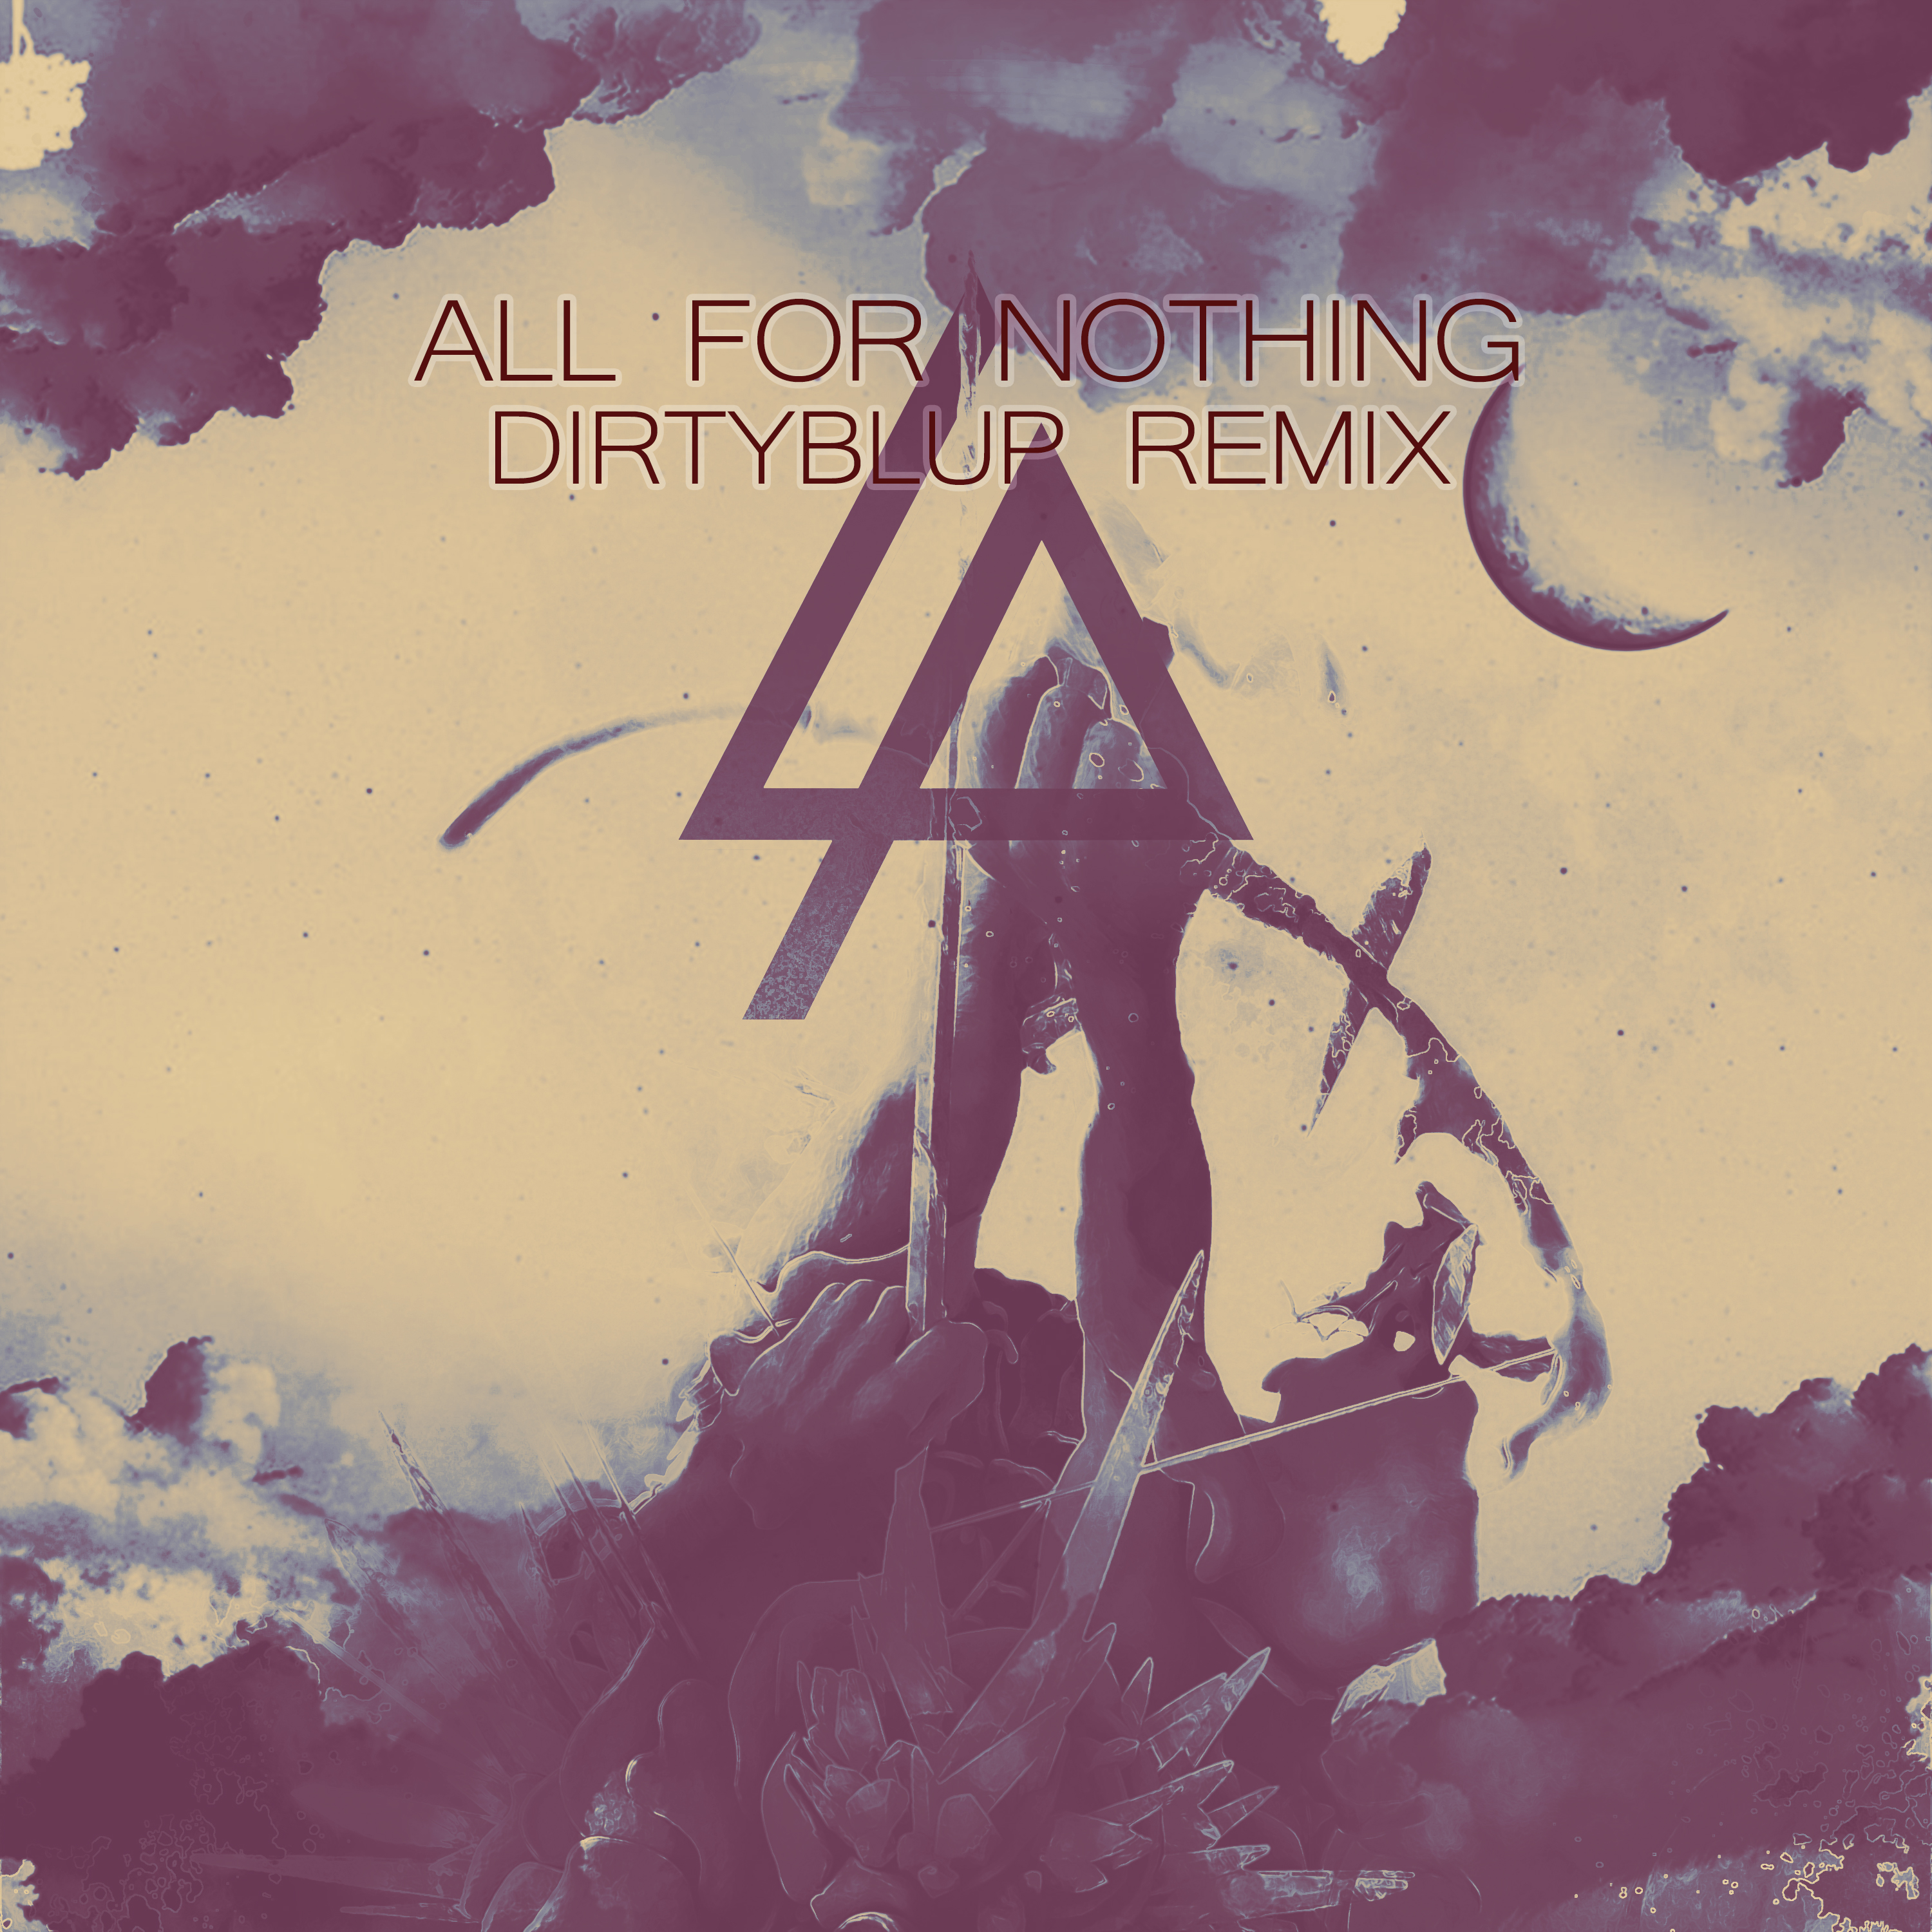 All for Nothing - Linkin Park (DirtyBlup Remix) by DirtyBlup on